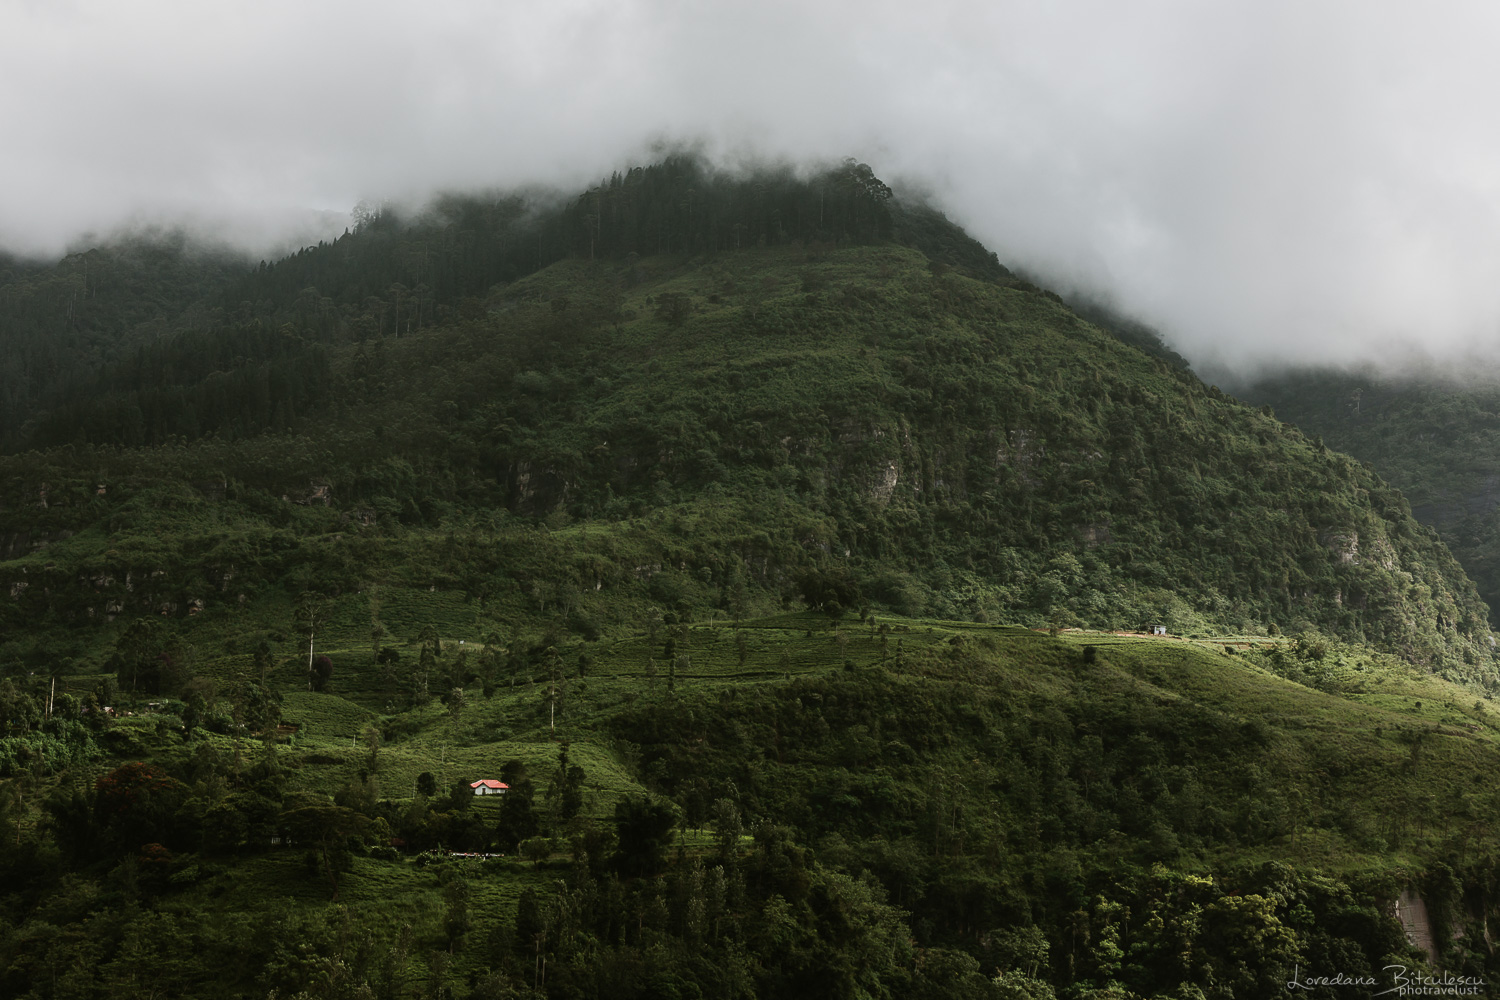 View from the Tea Factory